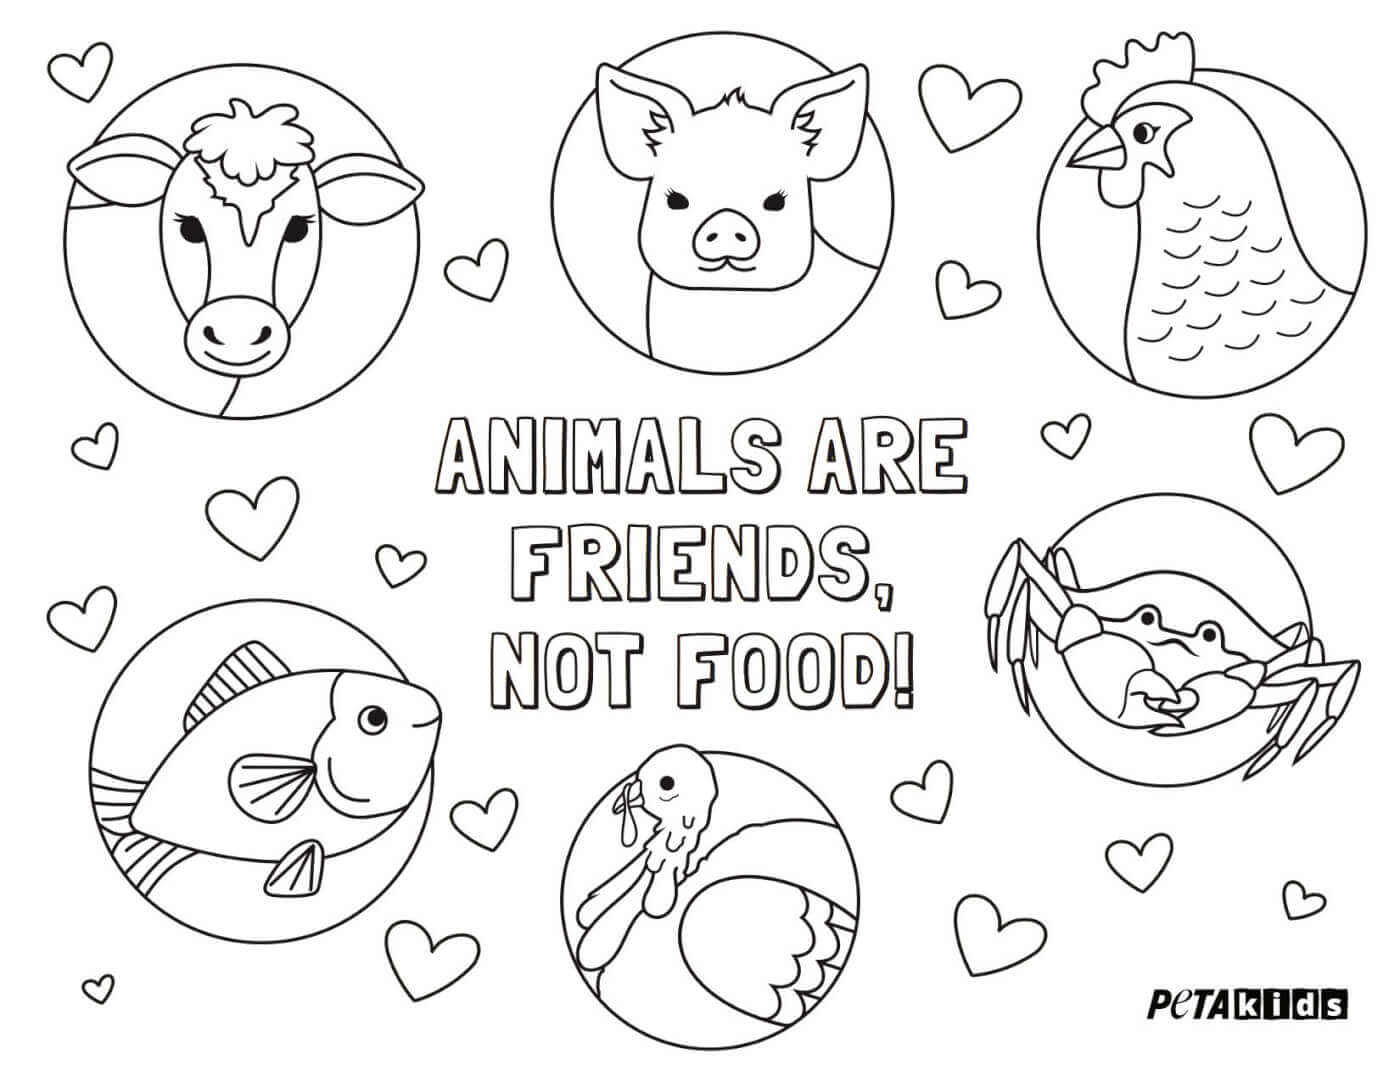 Check out peta kids animals are friends not food coloring sheets which remind us that all animals deserve our respect and that no animals deserve to